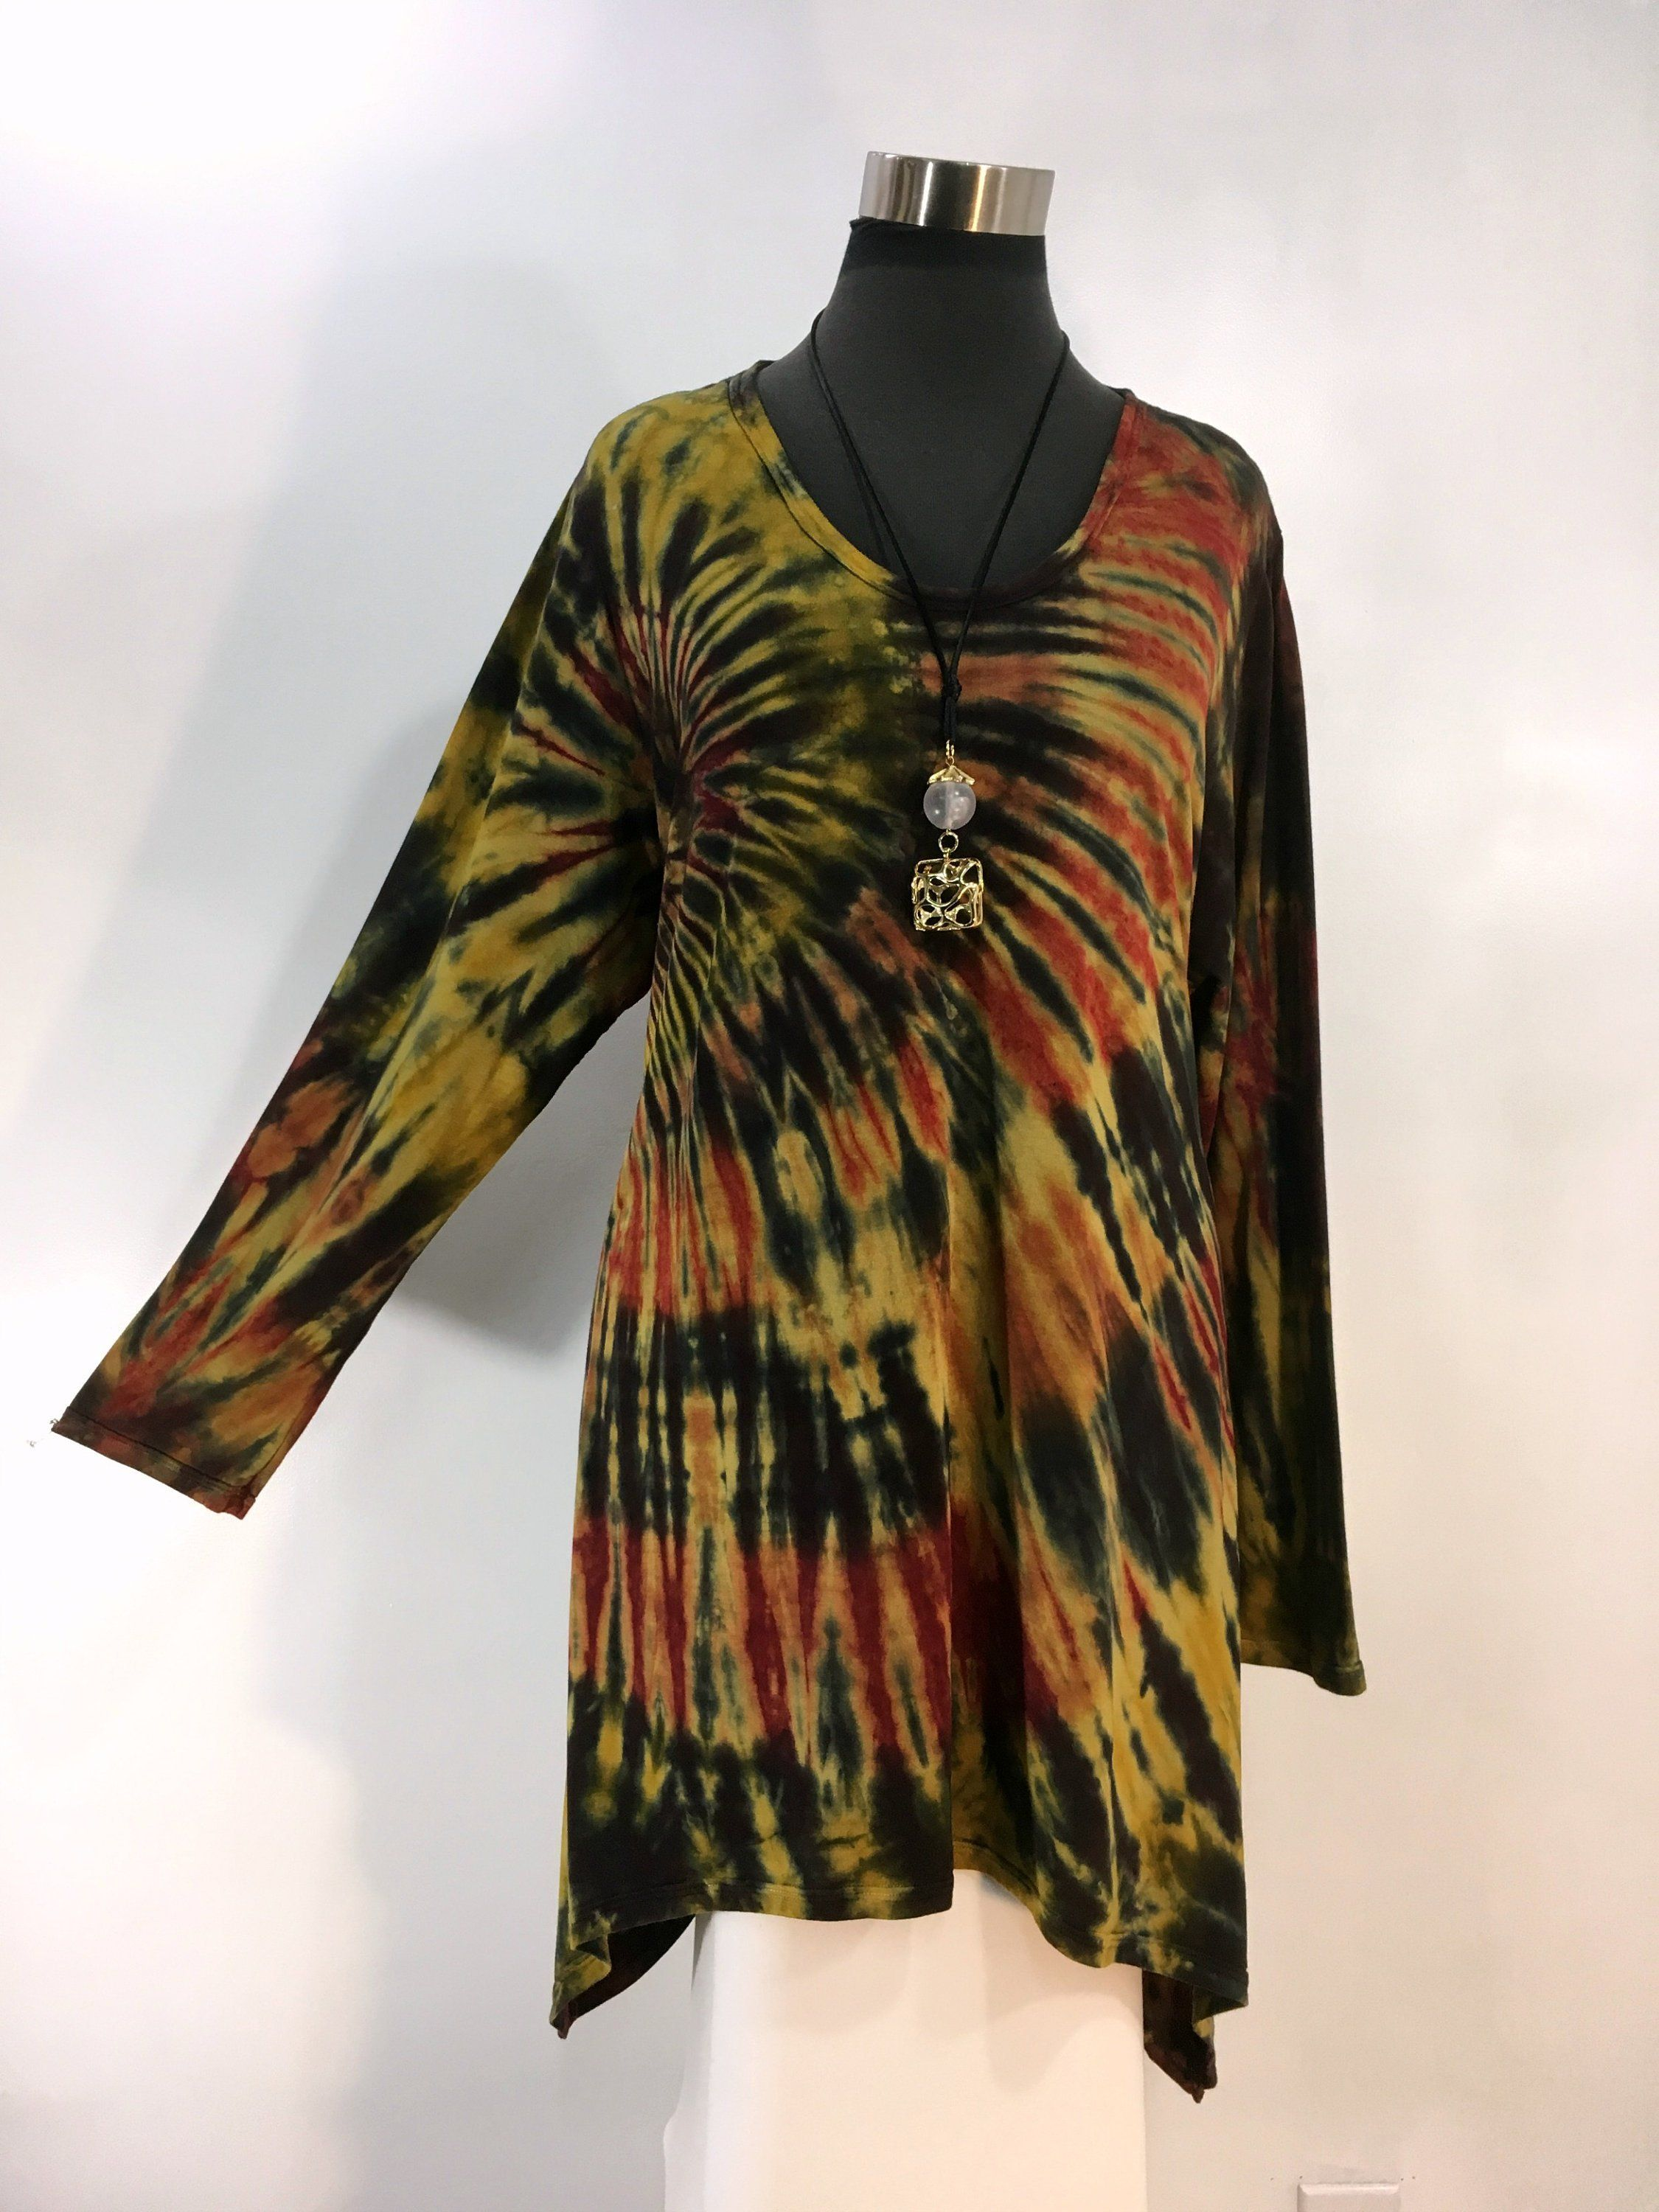 f25e010a22e Plus size 2X tie dye tunic top with sharkbite hemline in bamboo blend fabric.  by qualicumclothworks on Etsy